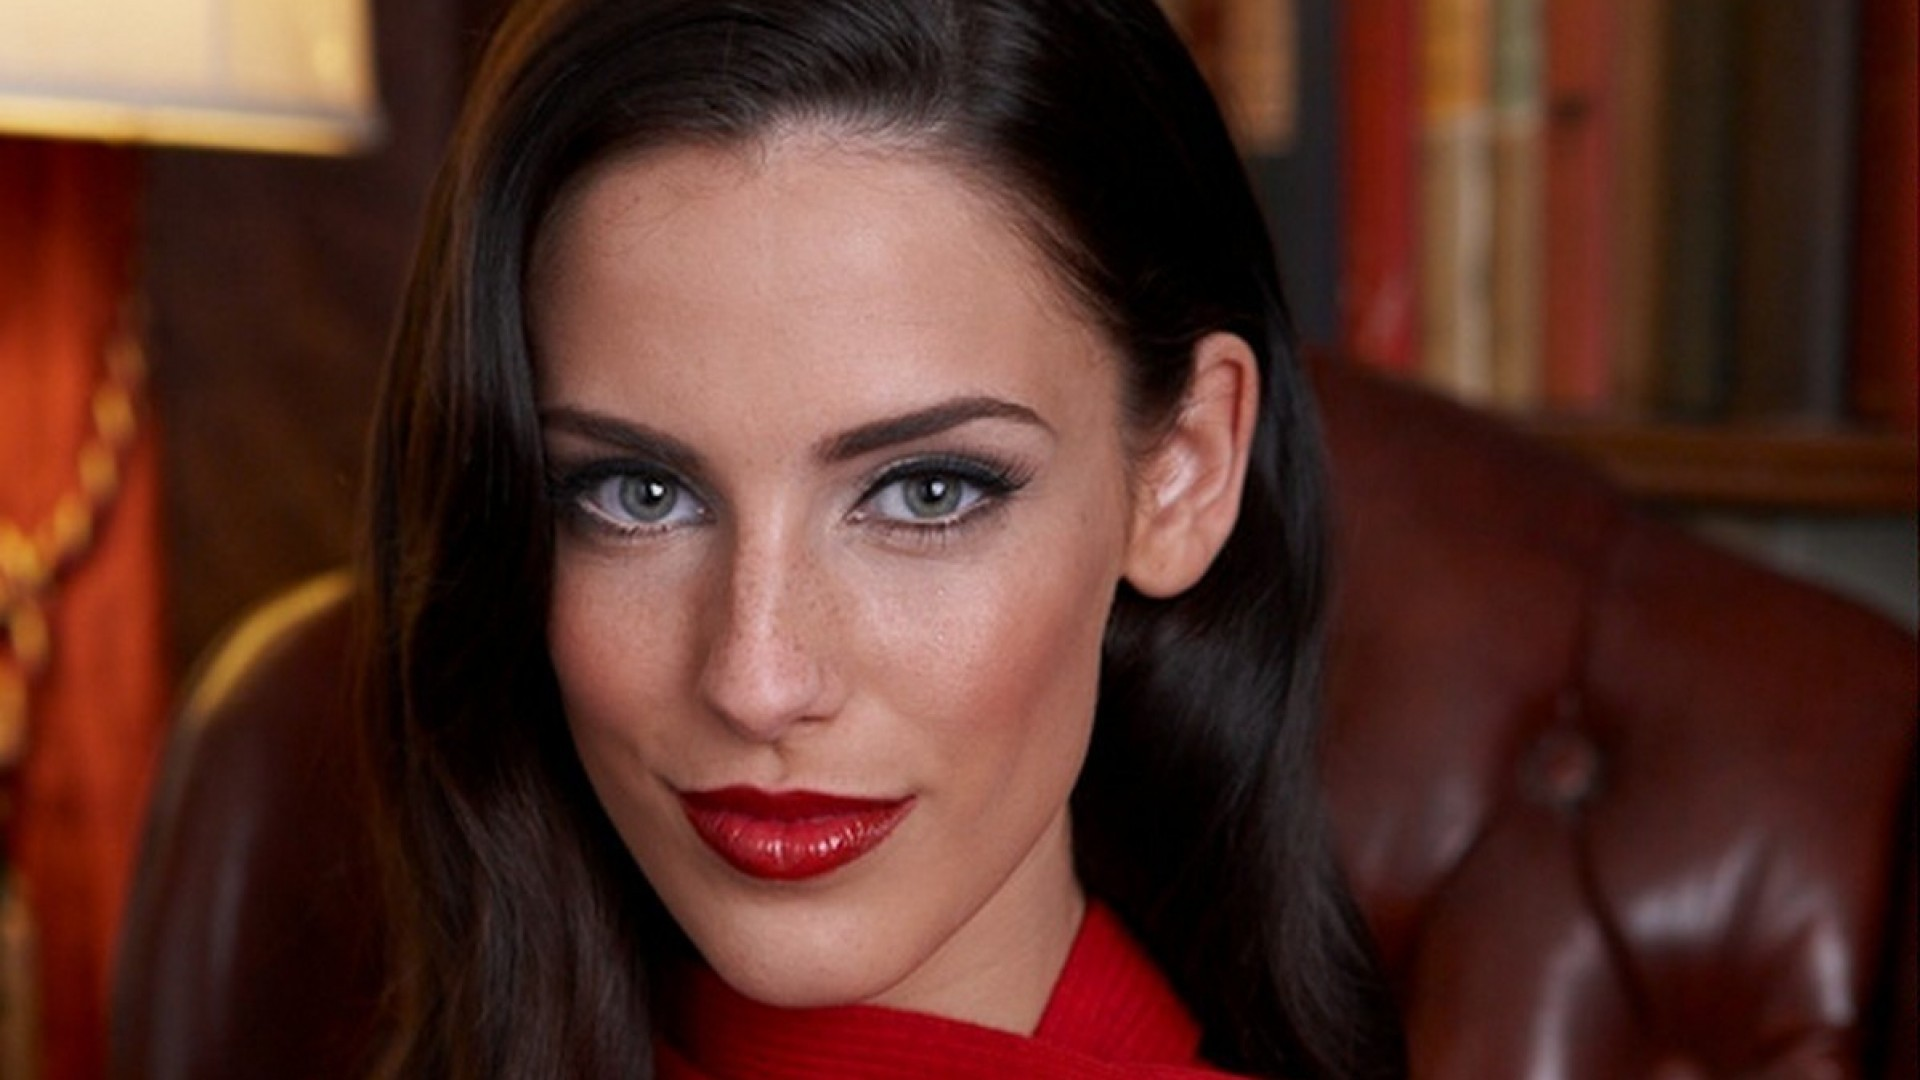 1920x1080 - Jessica Lowndes Wallpapers 11